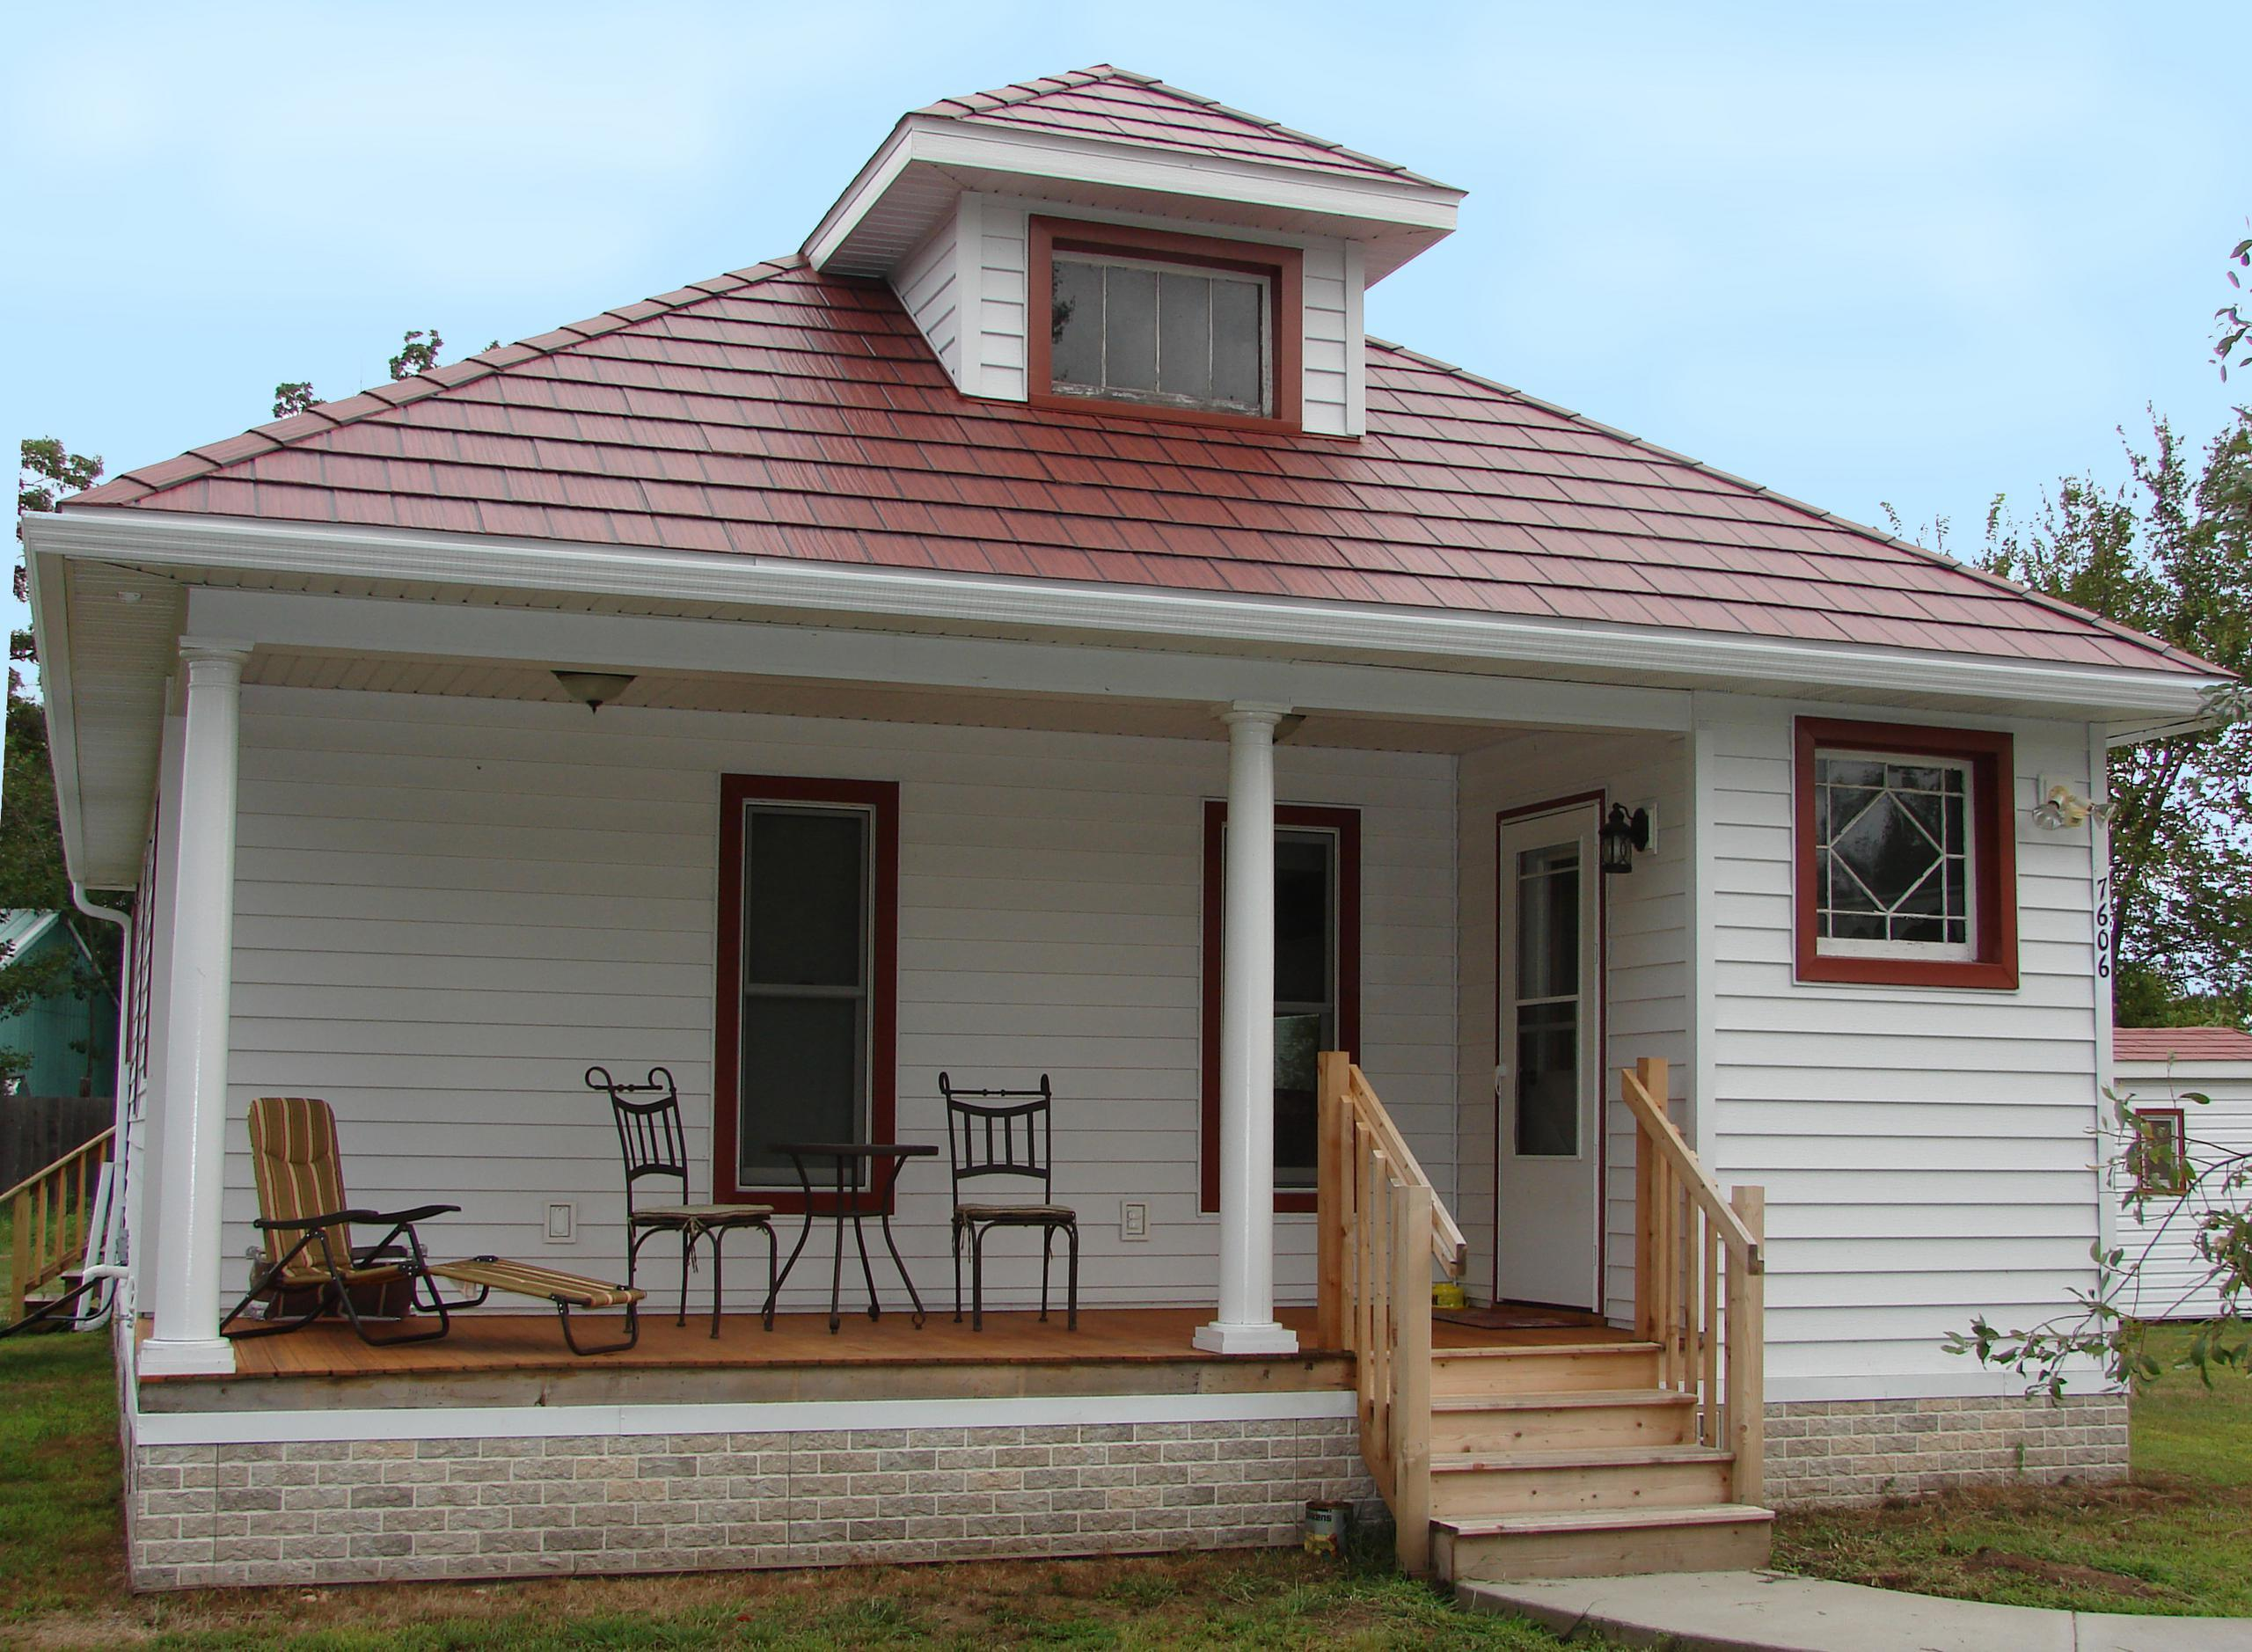 The homeowners of a small cottage in Wisconsin selected Generations Shake Classic Red HD Roofing to keep the same style and character that the home has always had in the community.